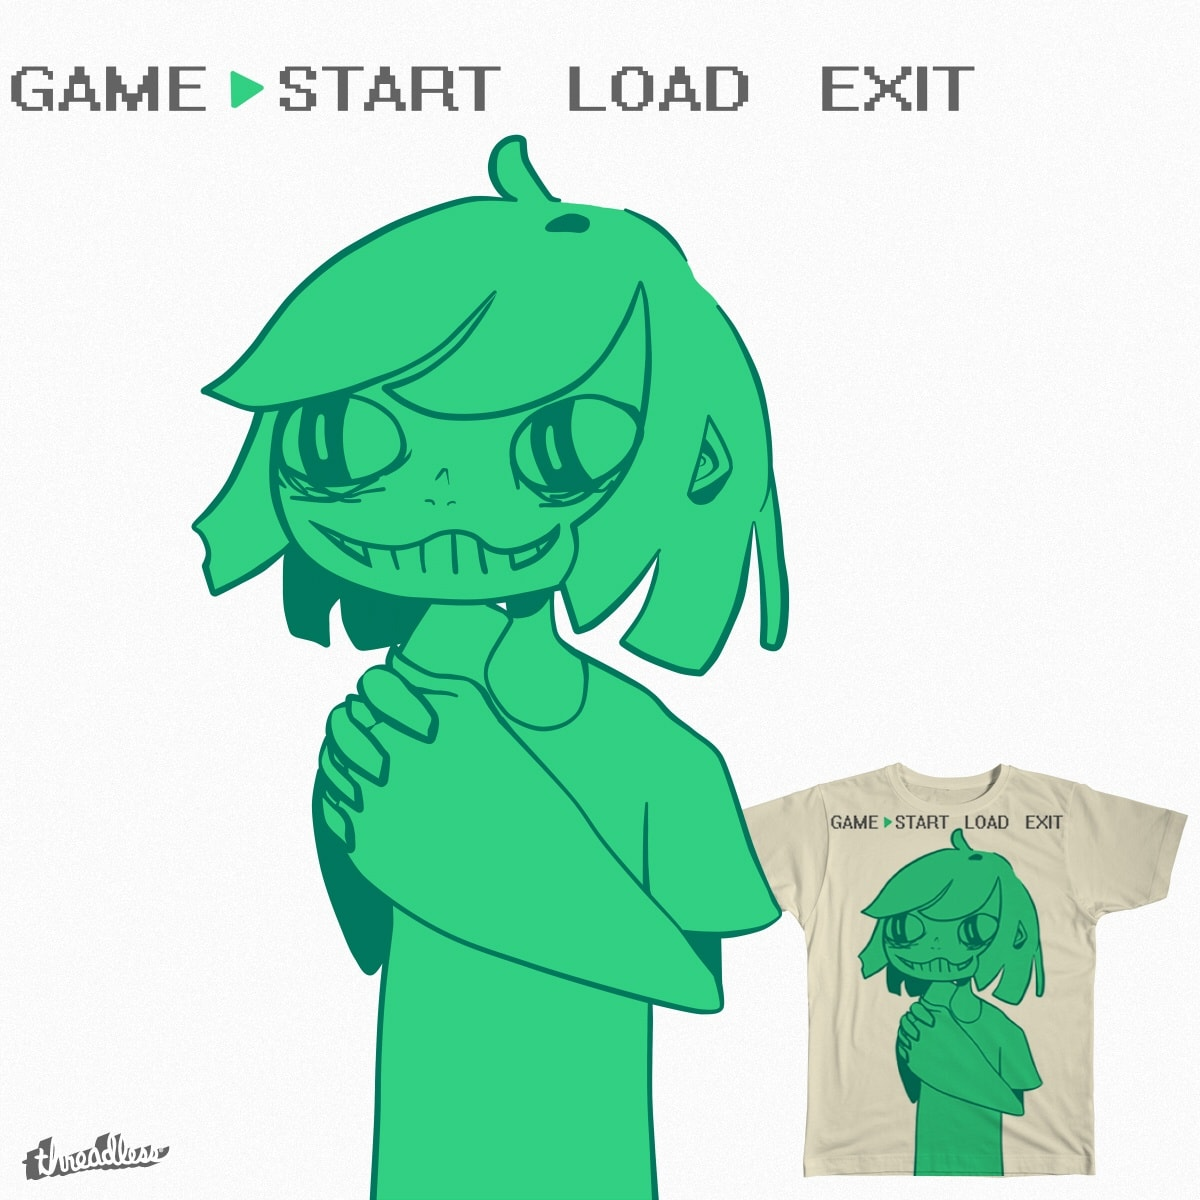 START GAME by grotesqueries on Threadless